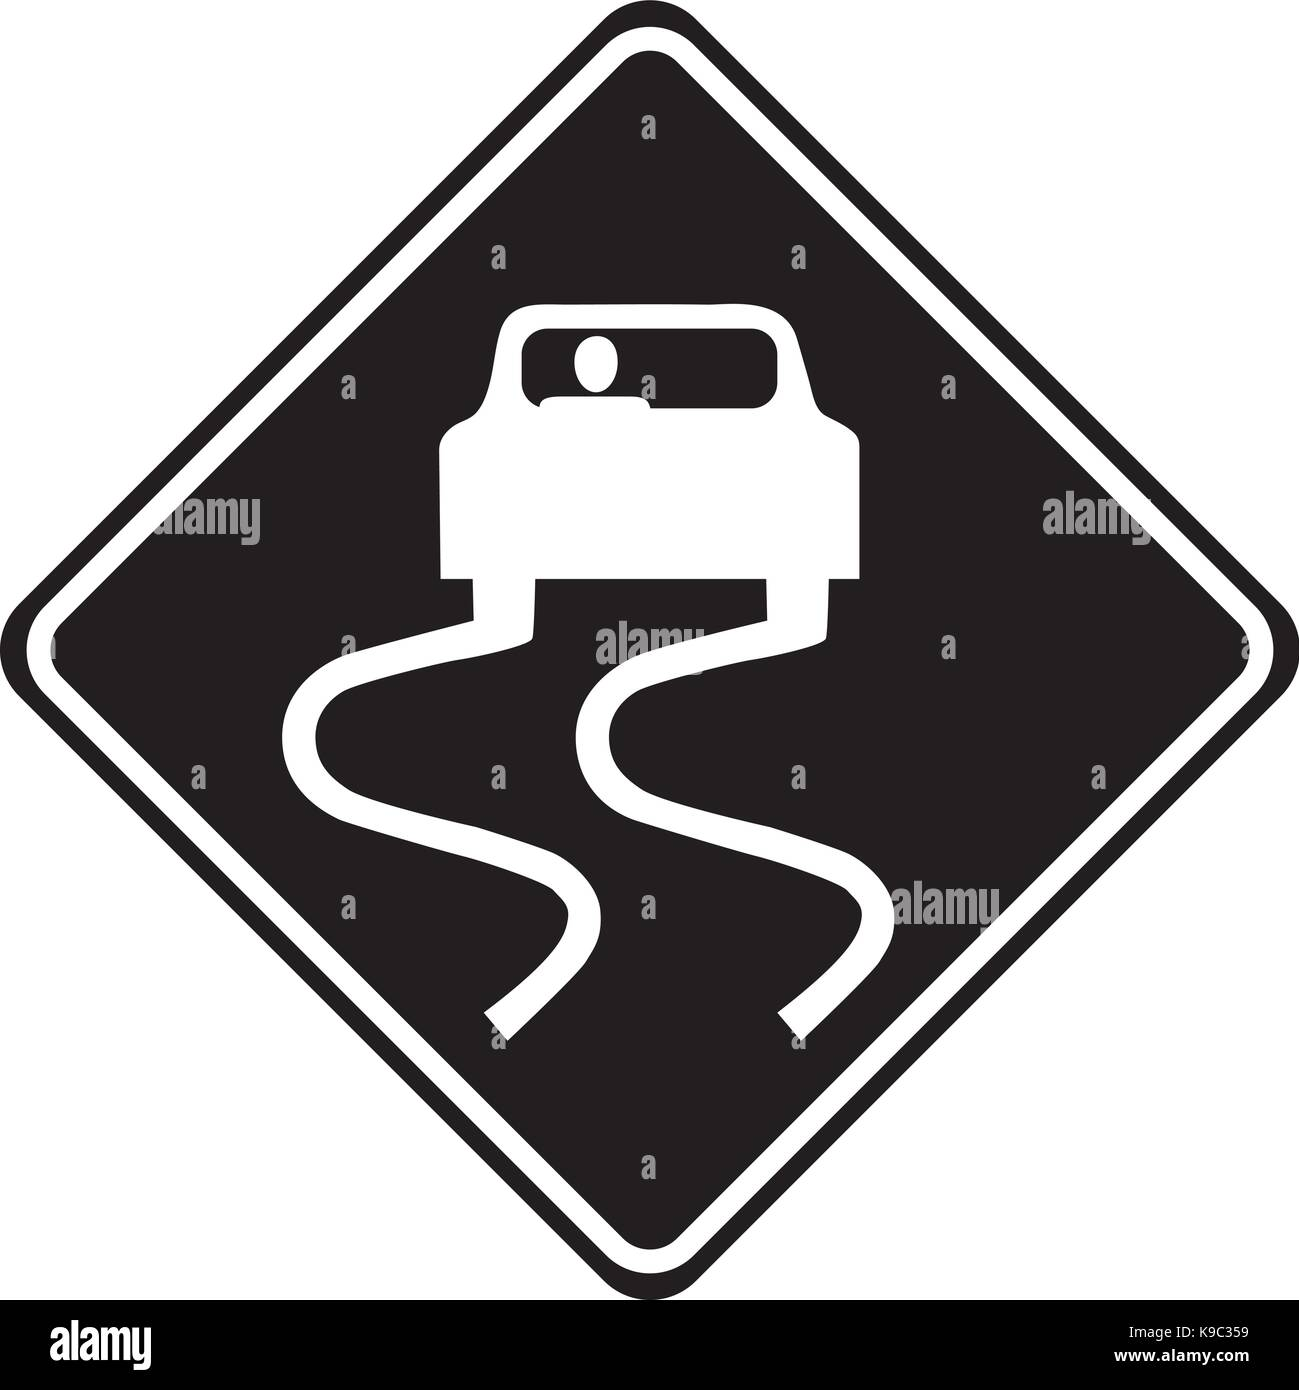 Slippery road ahead warning sign - Stock Image